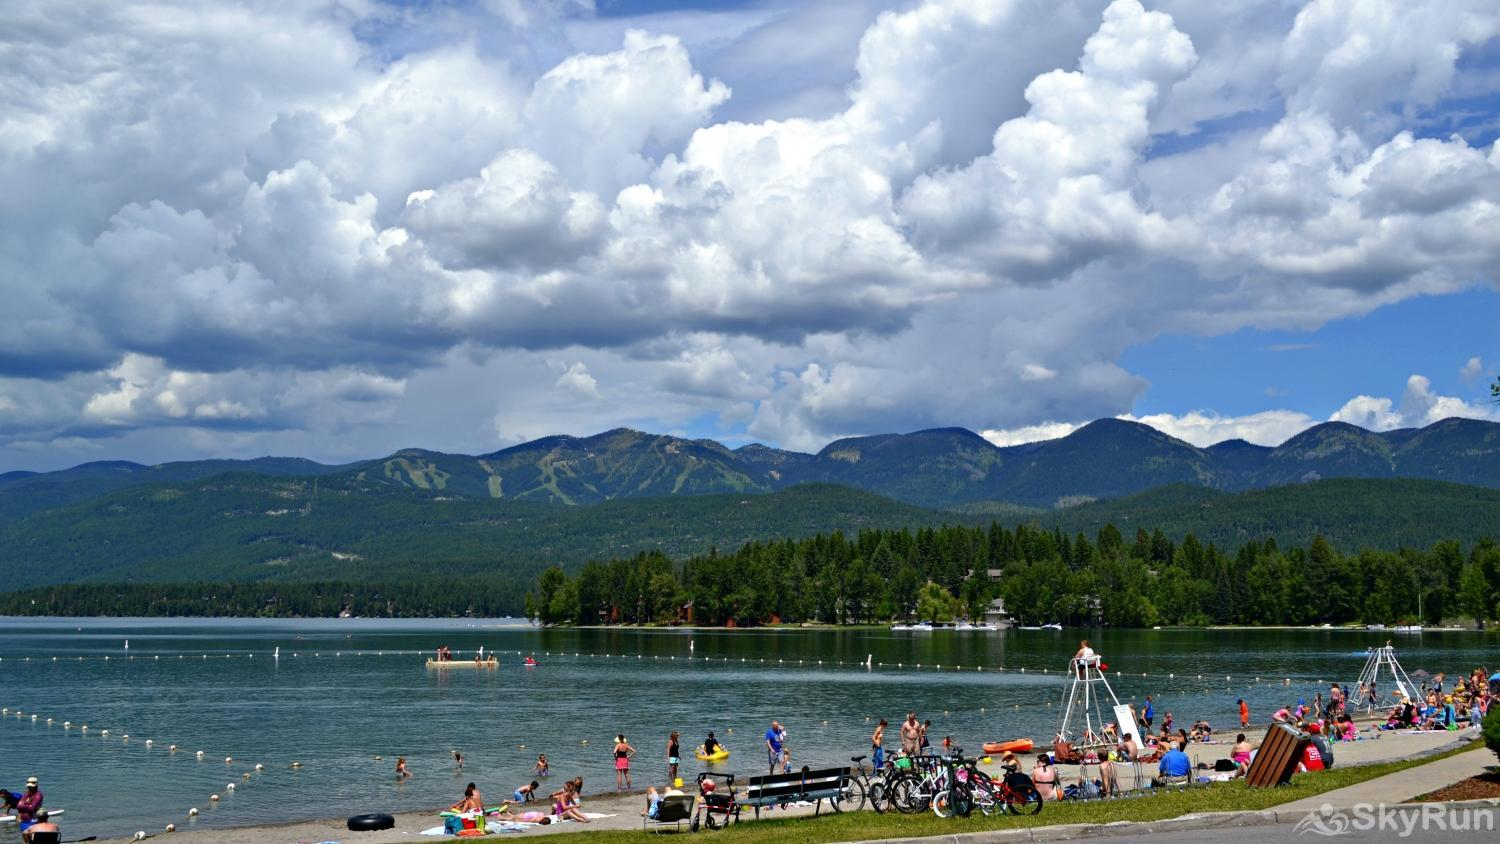 Highland Huckleberry Lodge In the summer enjoy Whitefish City Beach with stunning mountain views